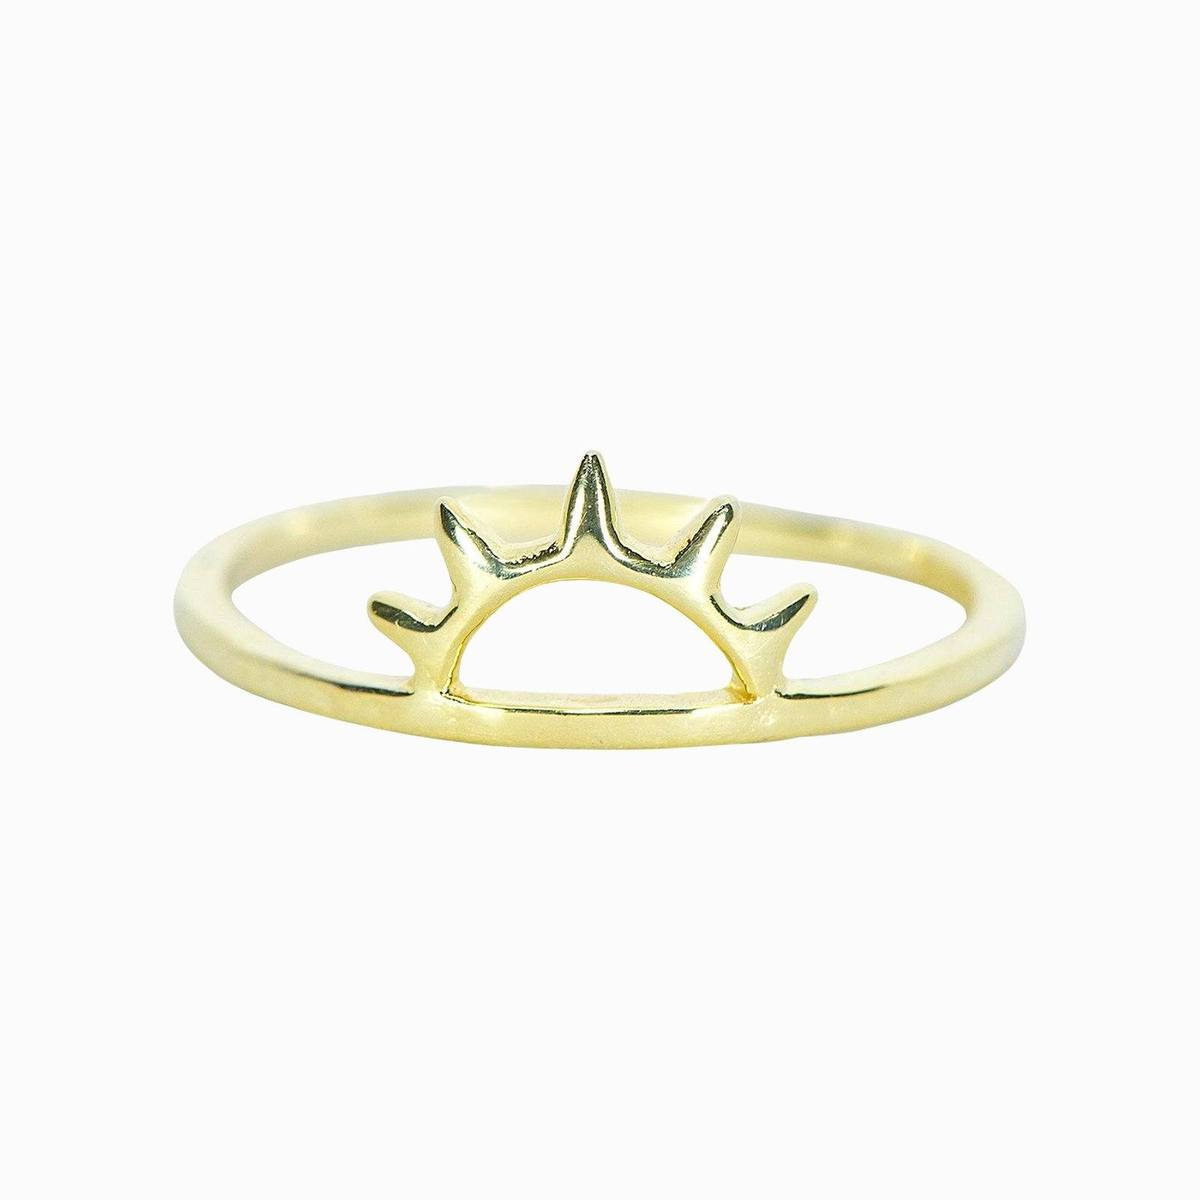 Sunset Ring by Pura Vida - Gold